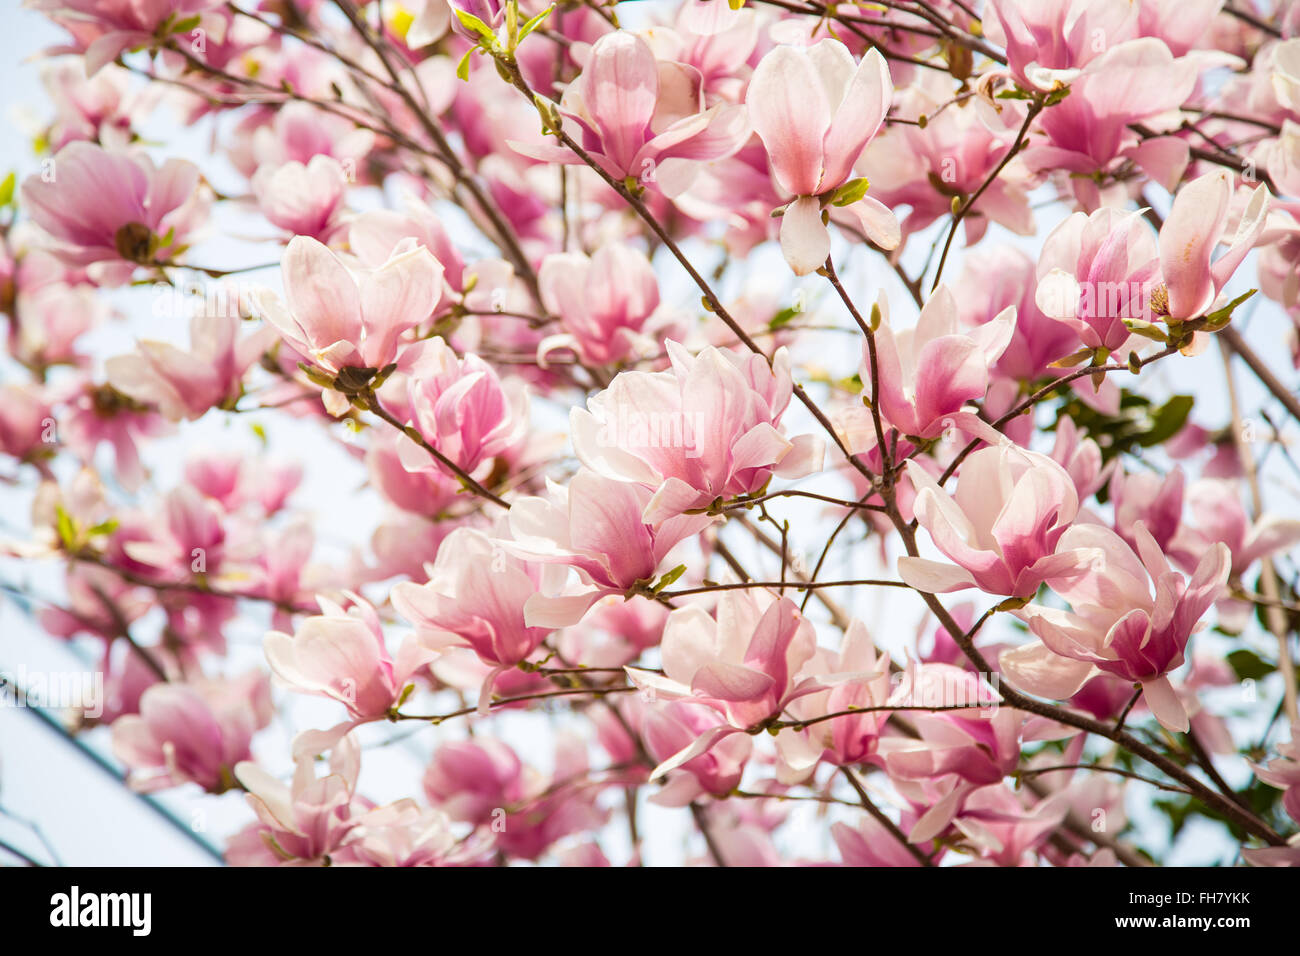 Cherry Blossoms bloom in early spring. - Stock Image